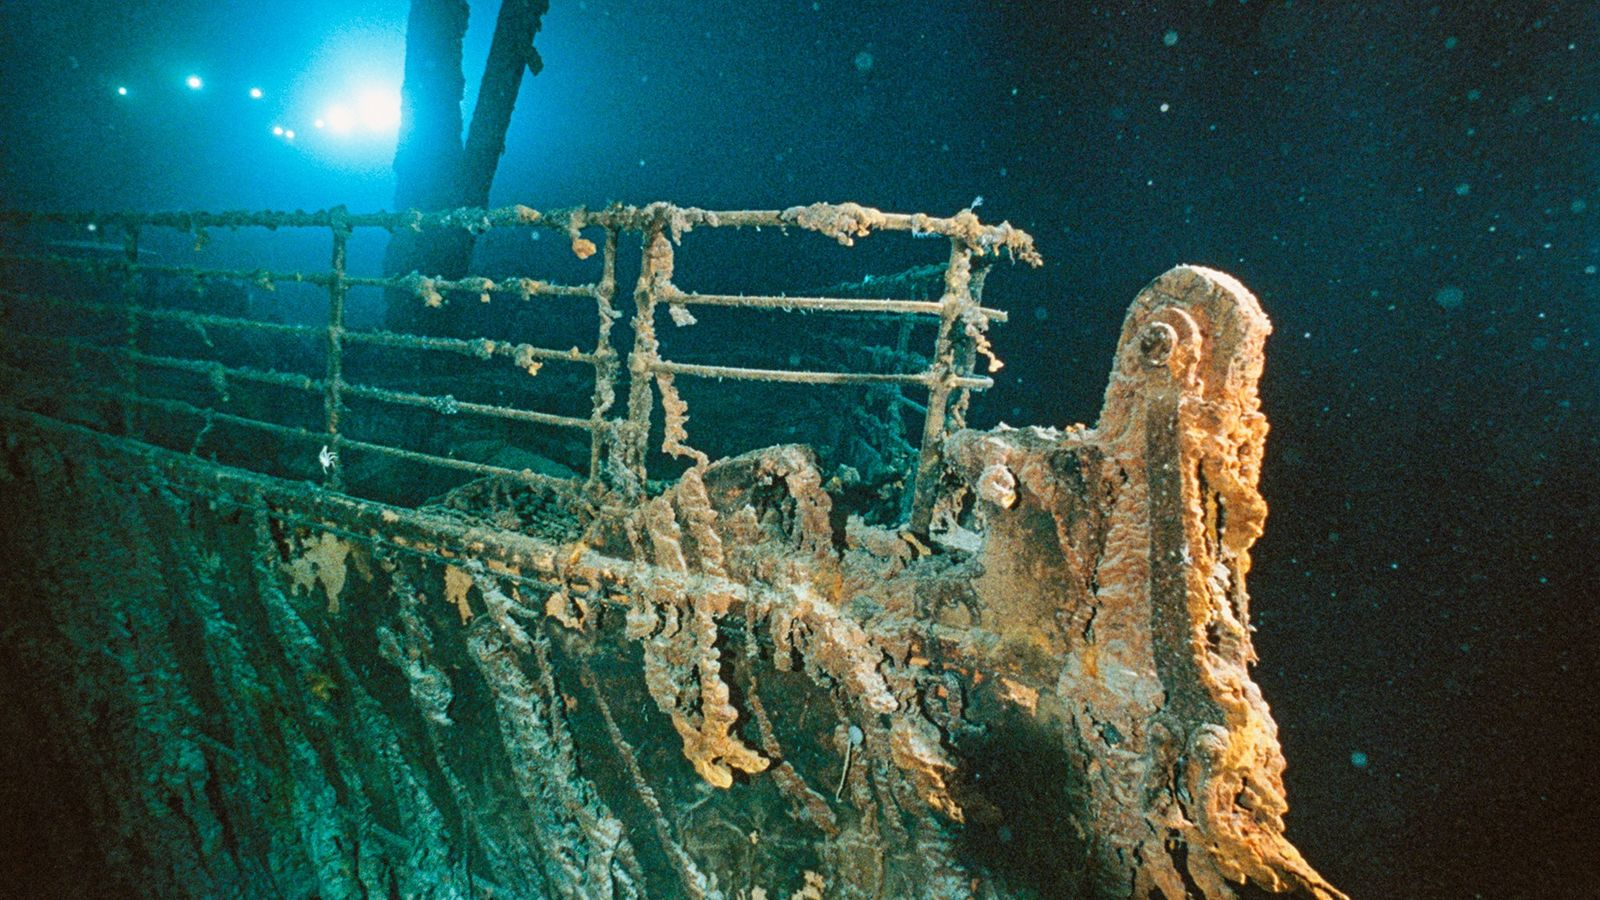 According to experts' various theories, the decayed bow of the famous ship could collapse in a ...